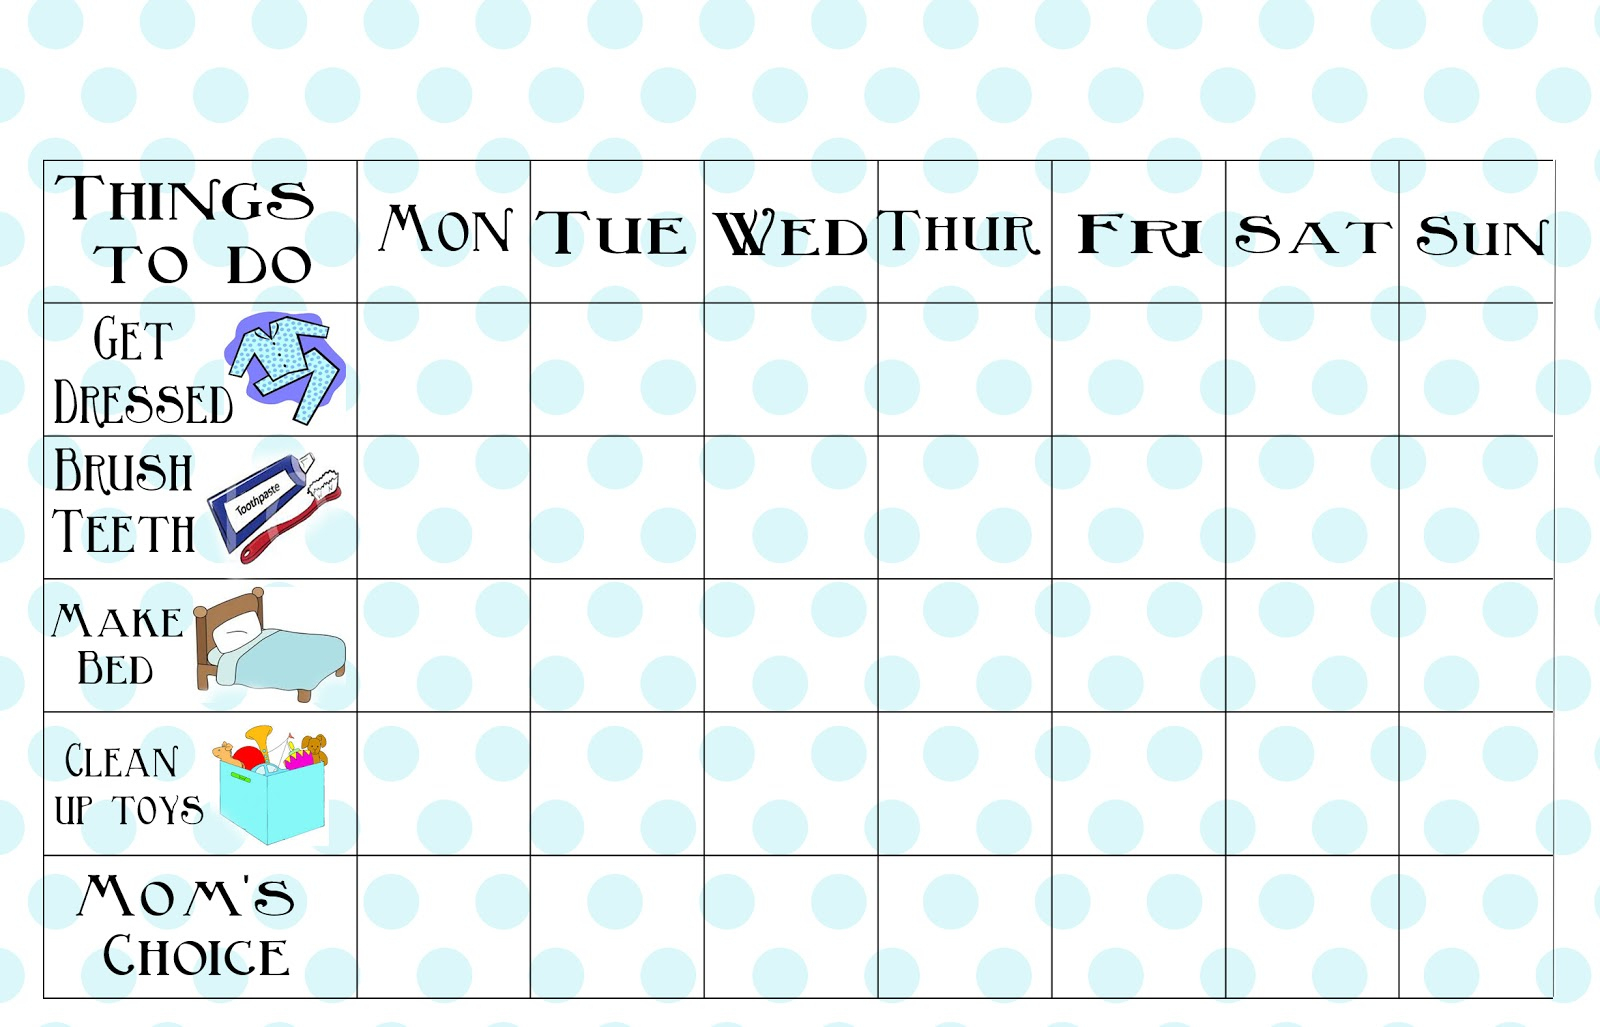 Free Printable Chore Chart - Free Printable Chore Charts For Kids With Pictures